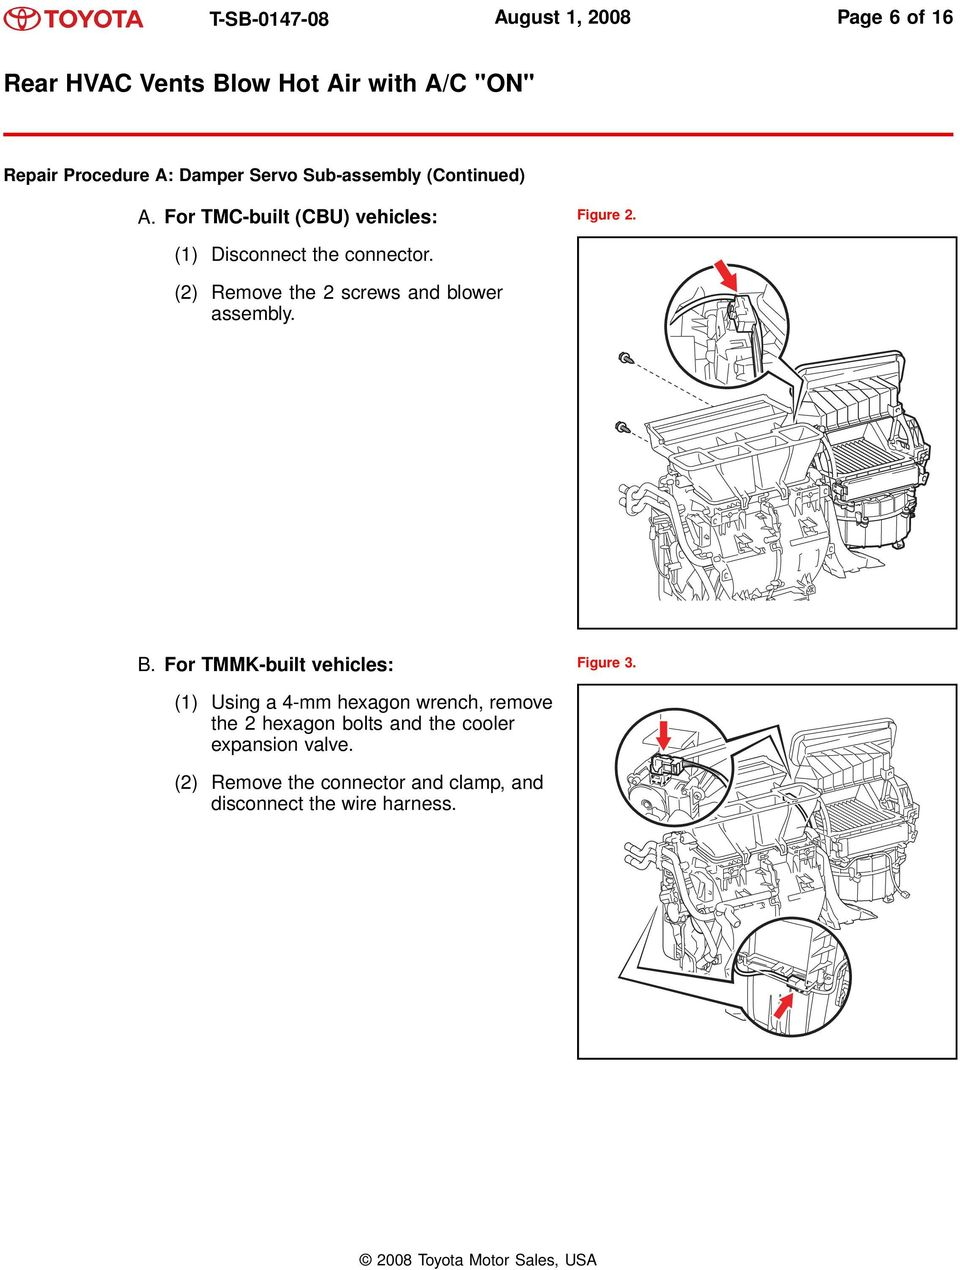 Rear Hvac Vents Blow Hot Air With A C On Pdf P Id Drawing For Tmmk Built Vehicles Figure 3